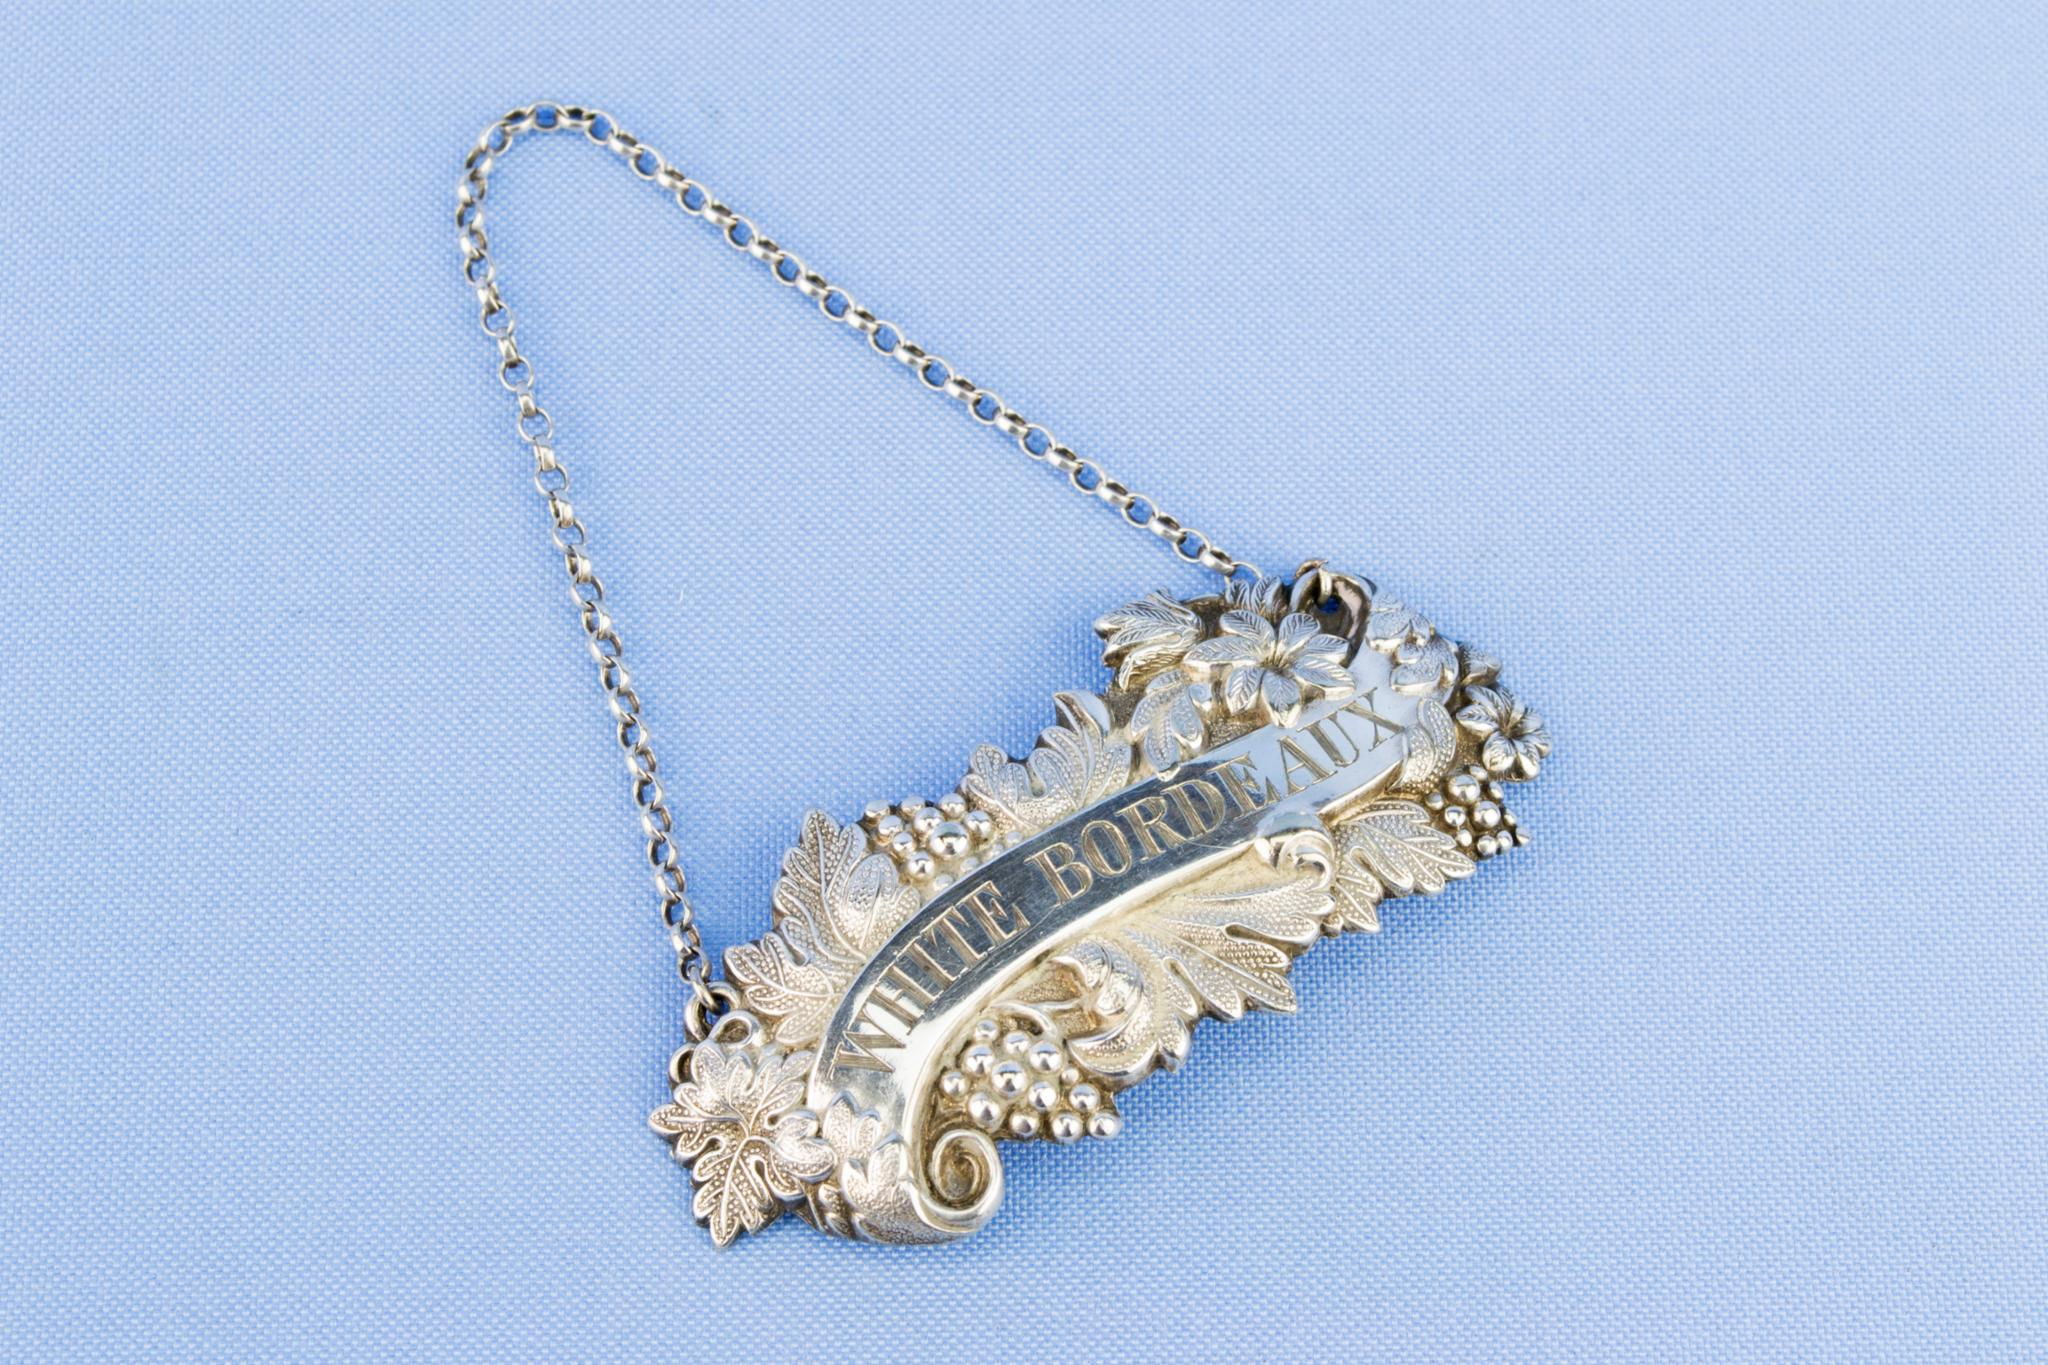 White Bordeaux Silver Plated Decanter Tag, English circa 1870